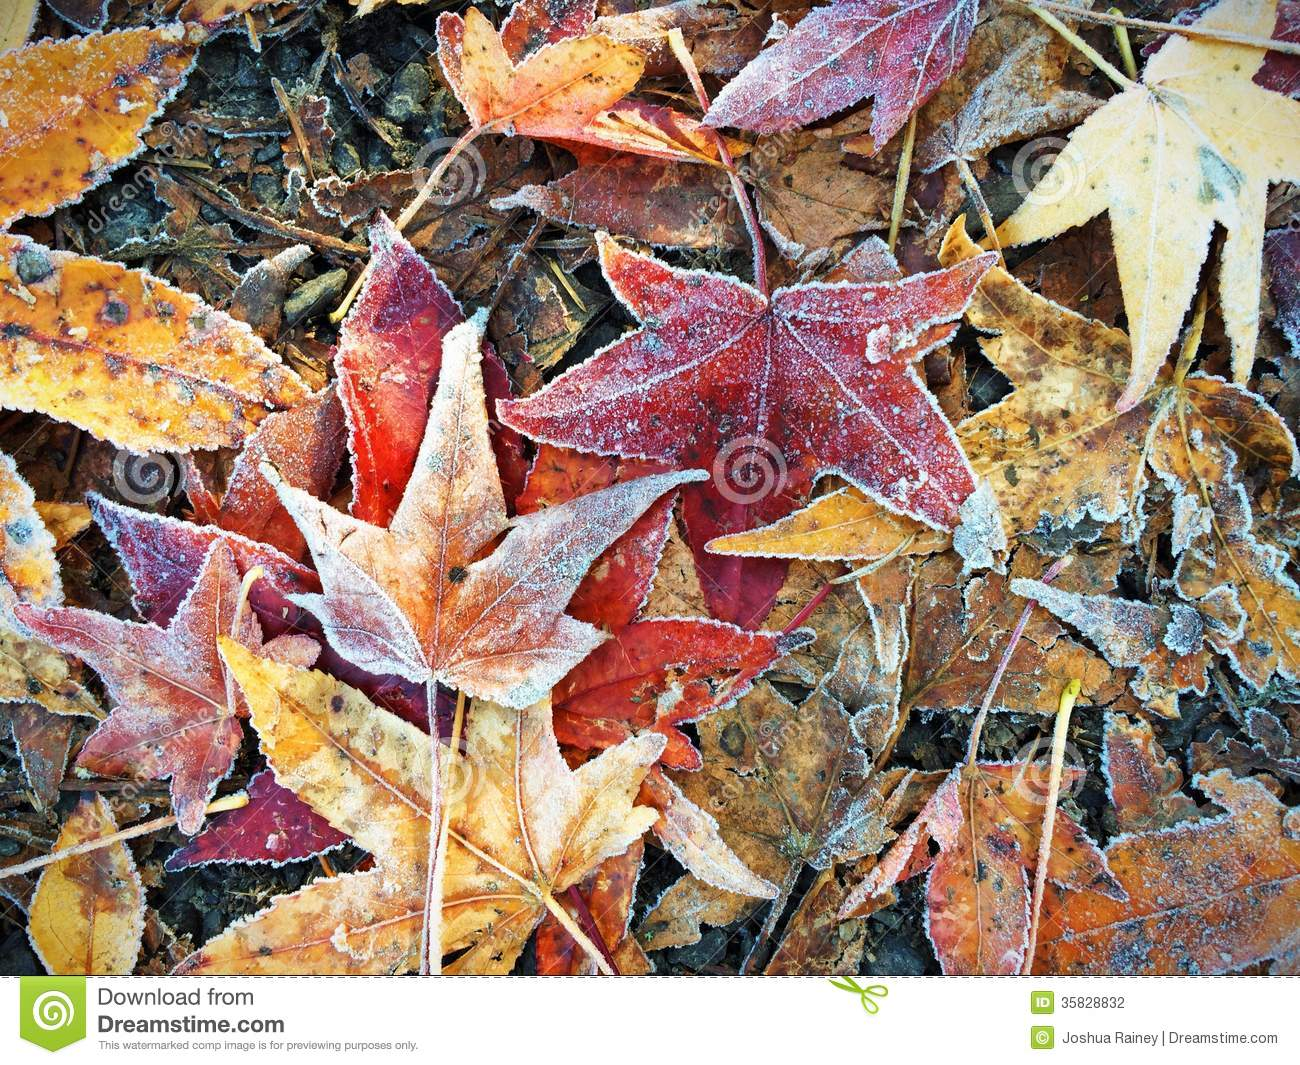 Fall Leaves Wallpaper Windows 7 Fall Autumn Leaves On Ground In Winter With Frost Stock